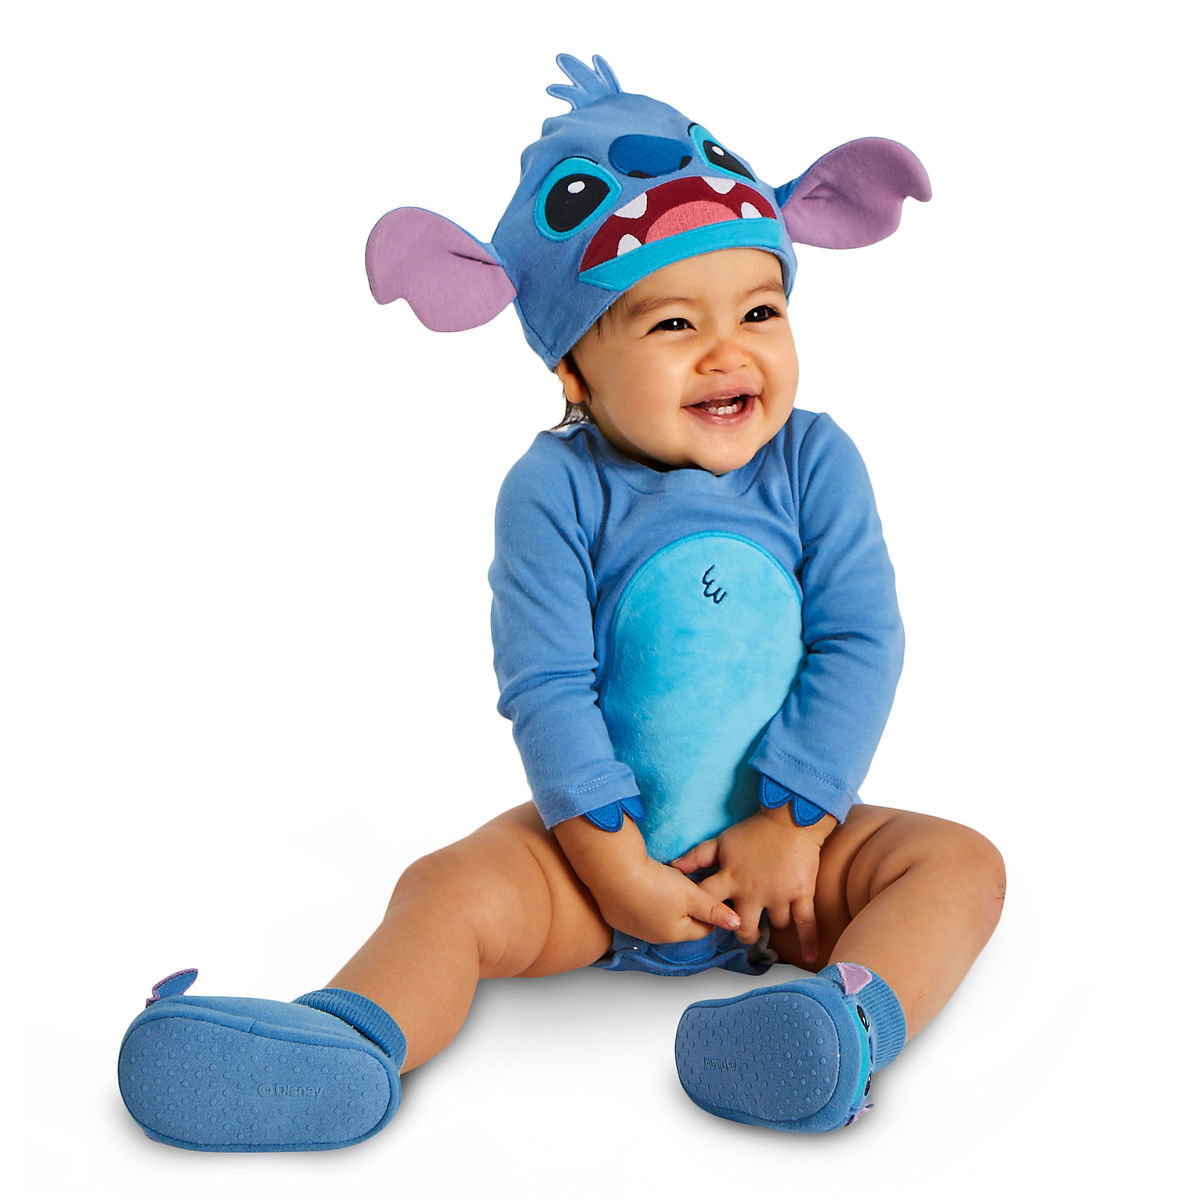 stitch costume collection for baby | shopdisney